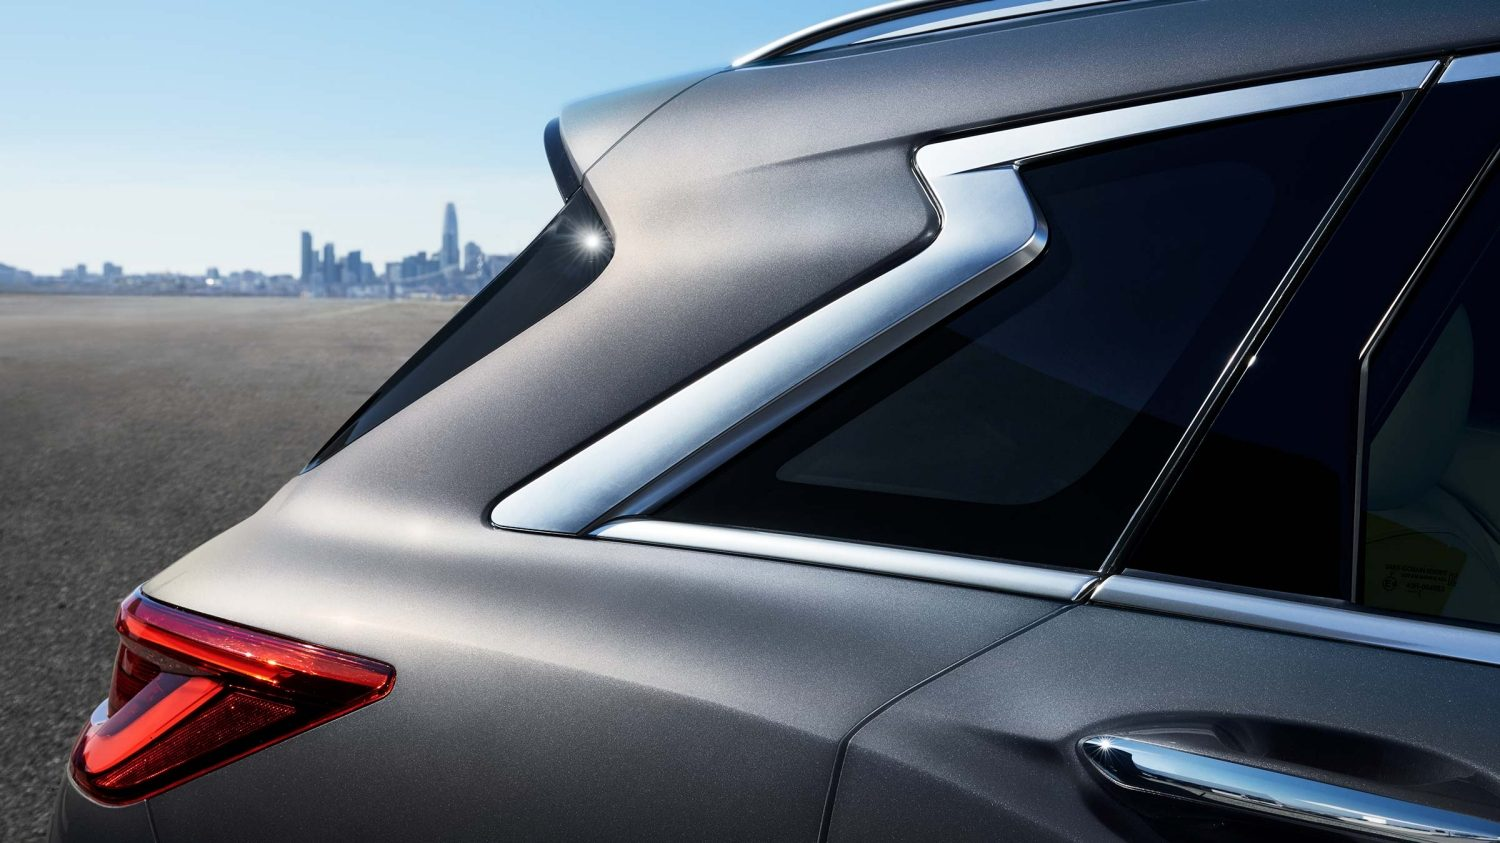 2019 INFINITI QX50 Luxury Crossover D Pillar Exterior Accent